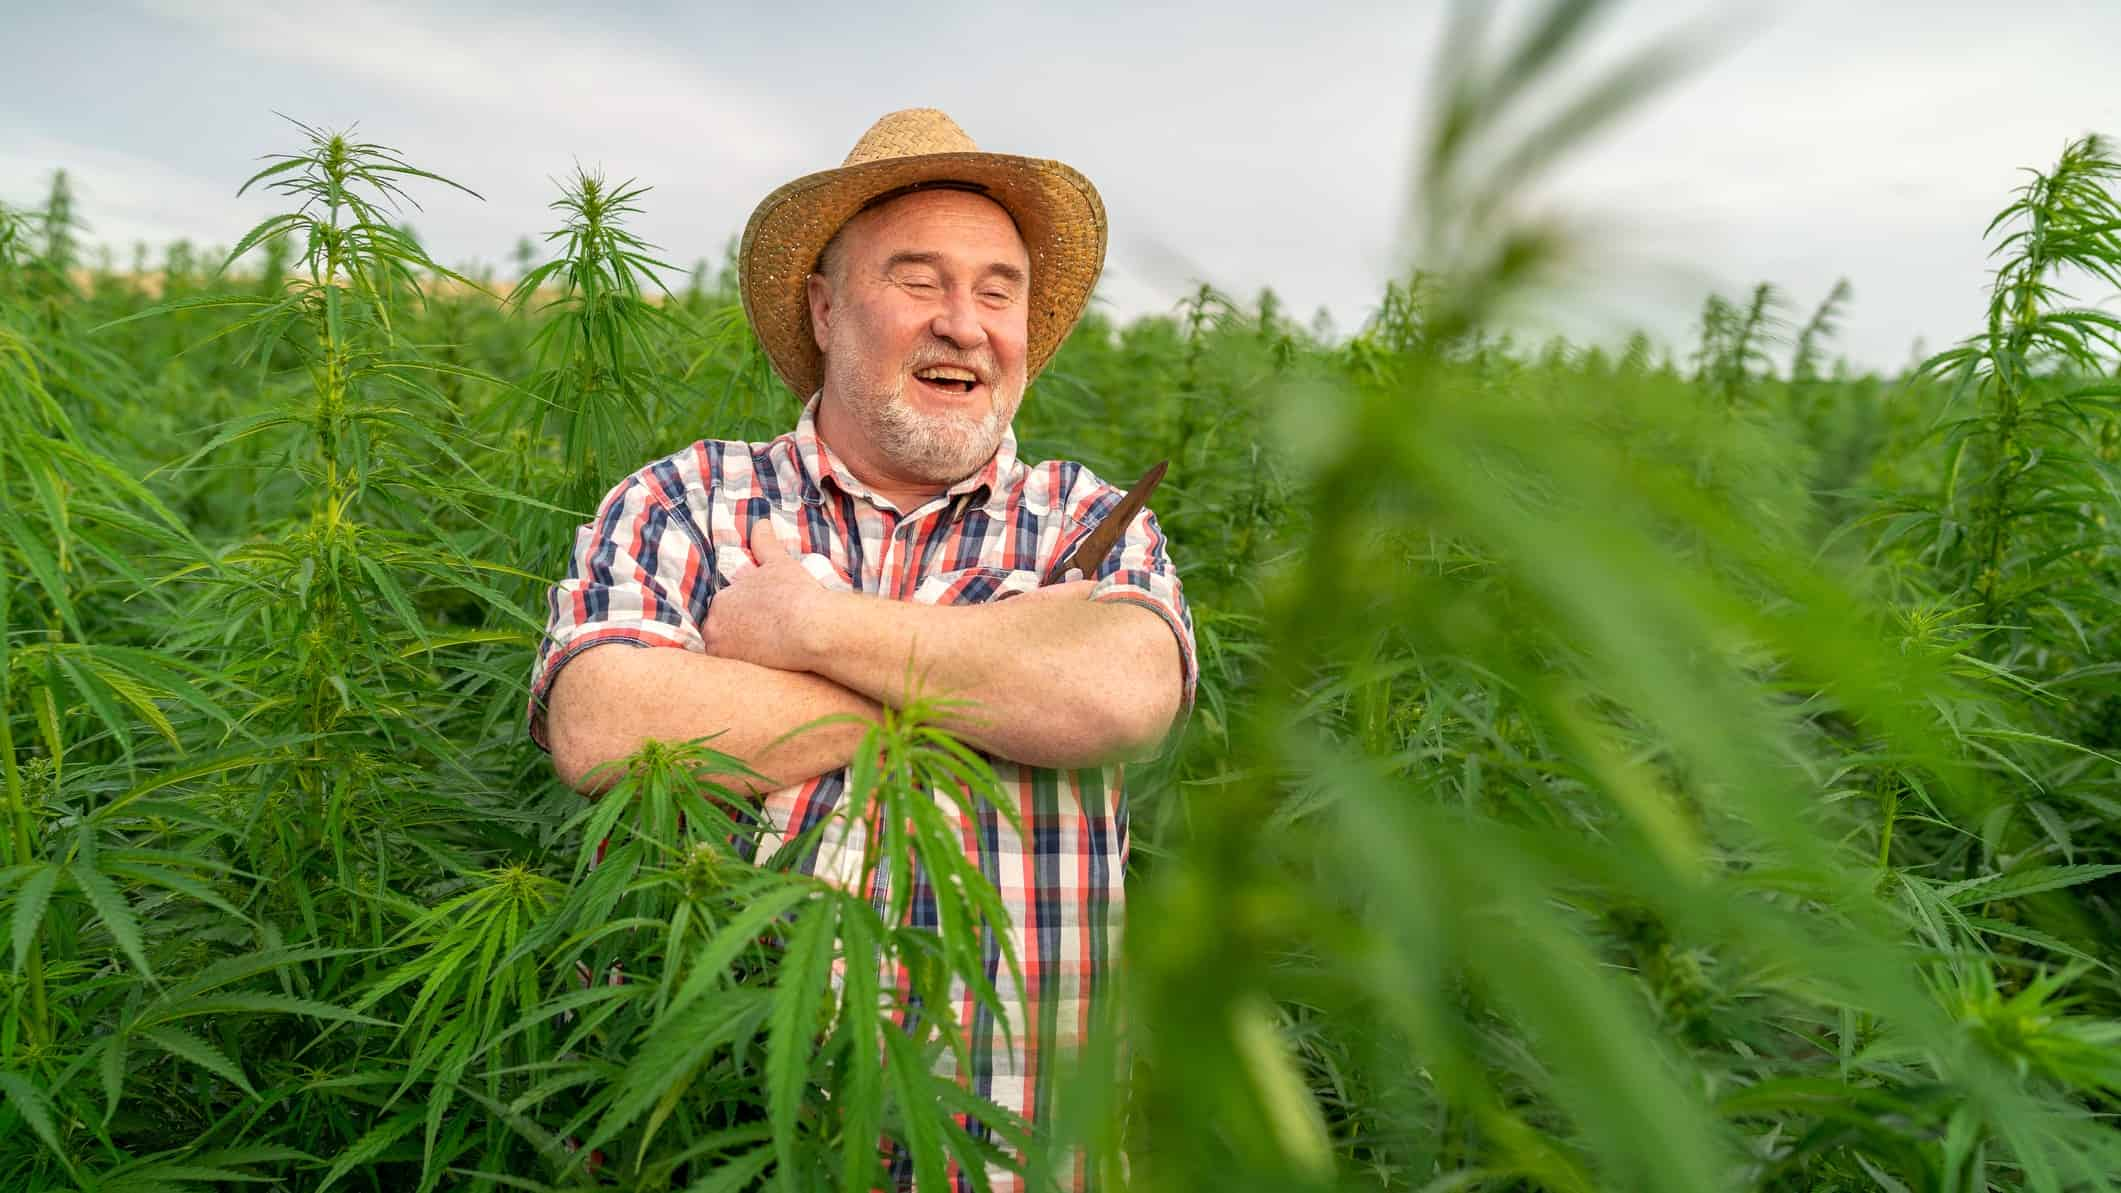 an older farmer wearing a checkered shirt and a straw hat stands in a green field of cannabis plants growing up to waist level as he smiles looking at his crop.